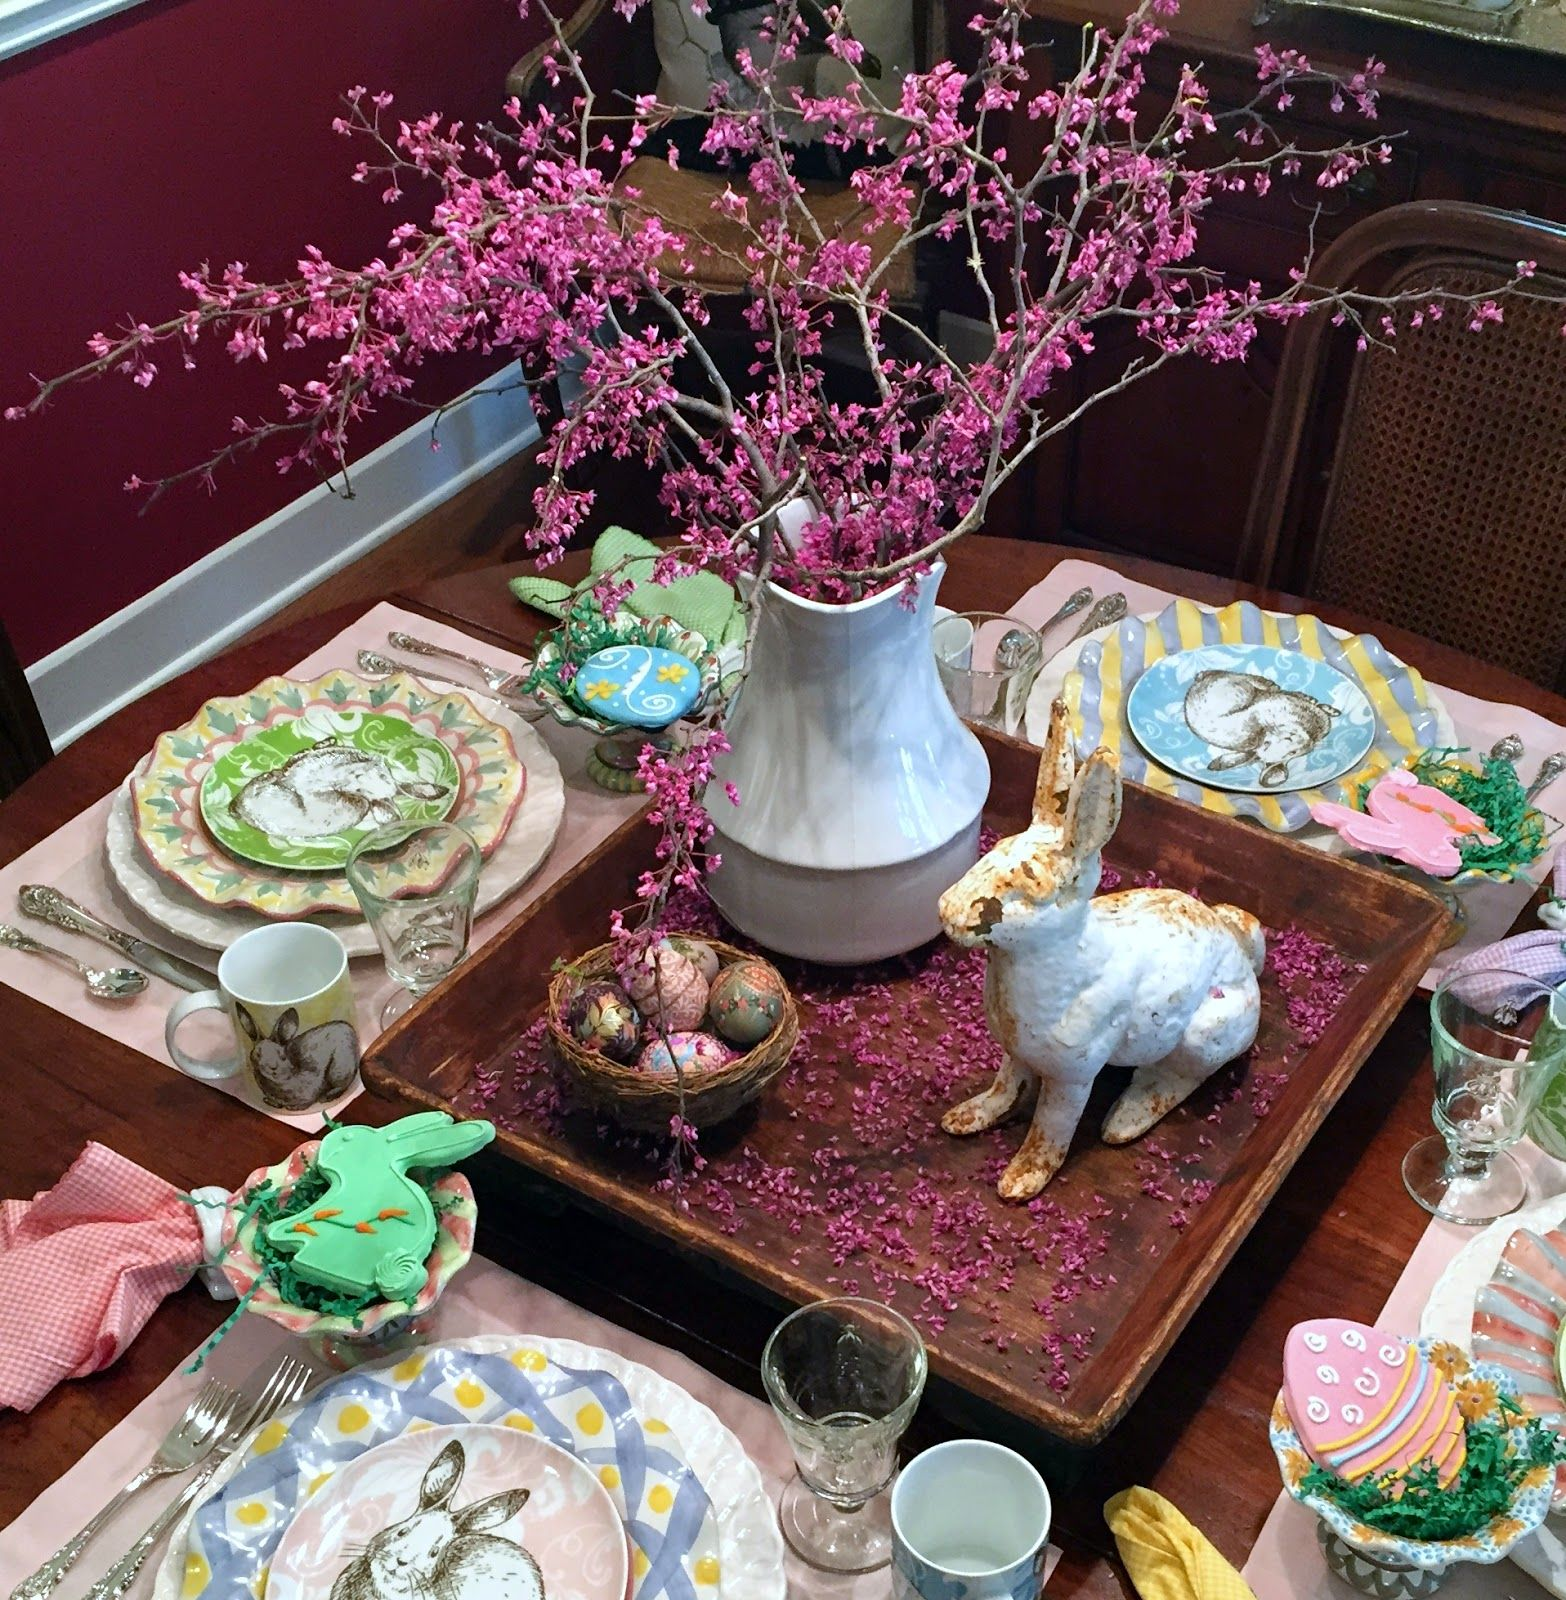 HYACINTHS FOR THE SOUL ~ Redbuds, bunnies, and painted eggs ~ It must be spring!